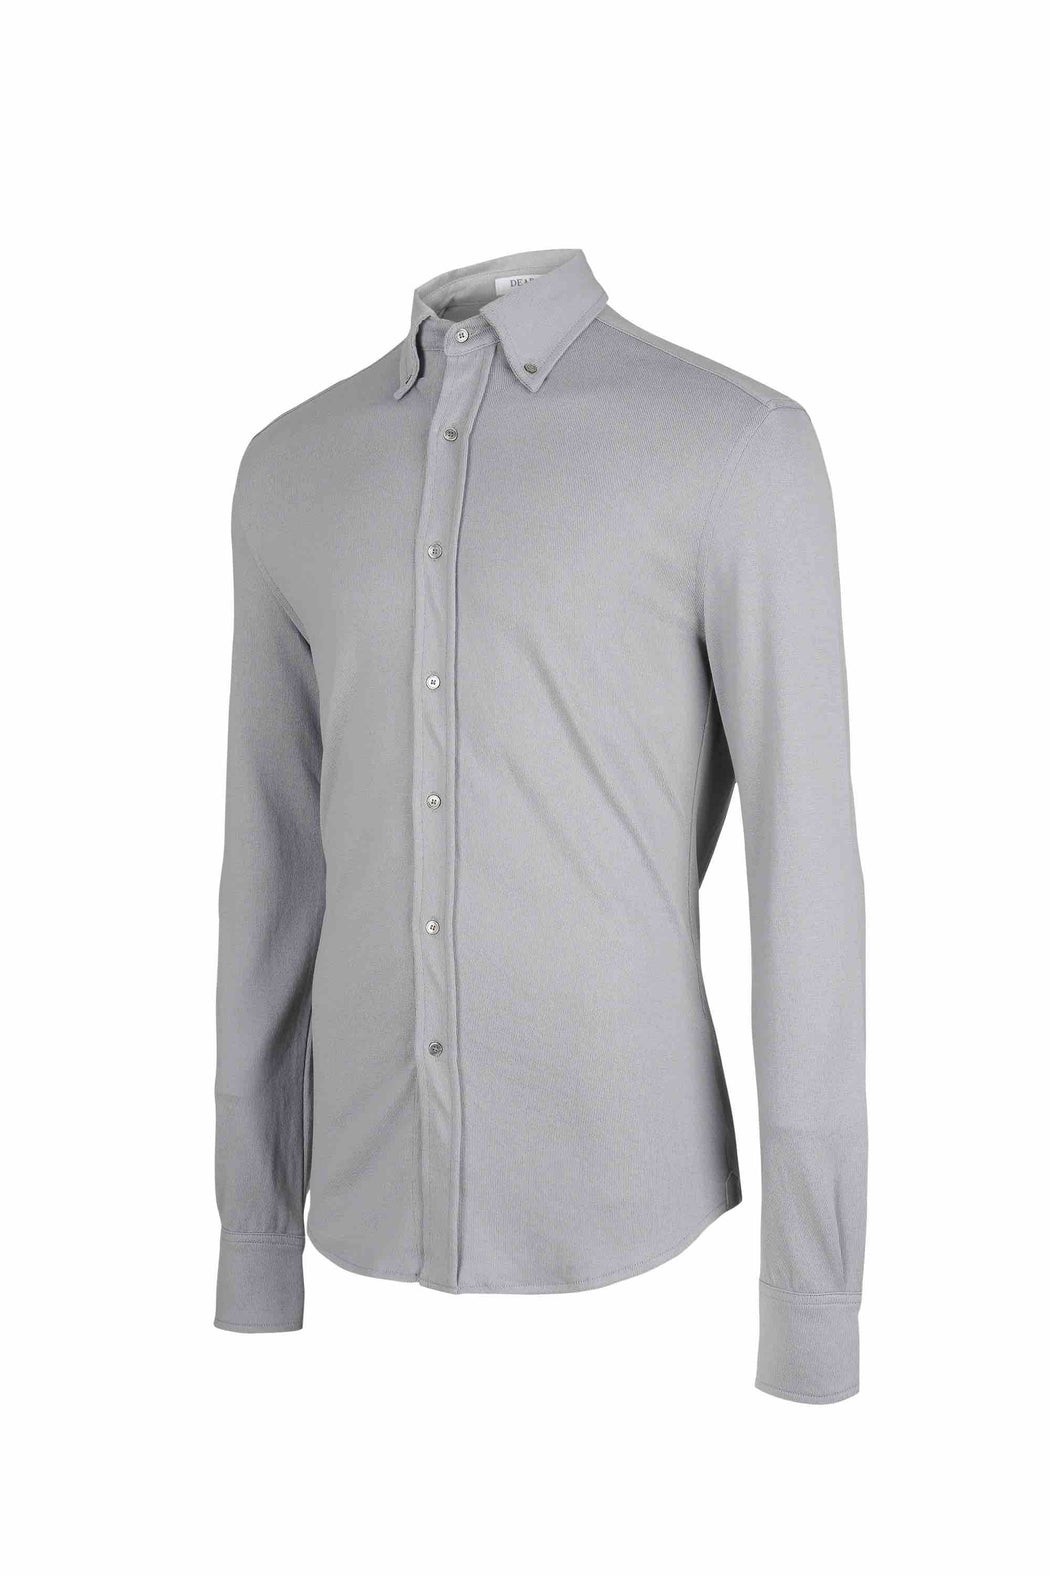 Side view of Men Button Down Jersey Shirt with darts, made with Organic Cotton in Grey